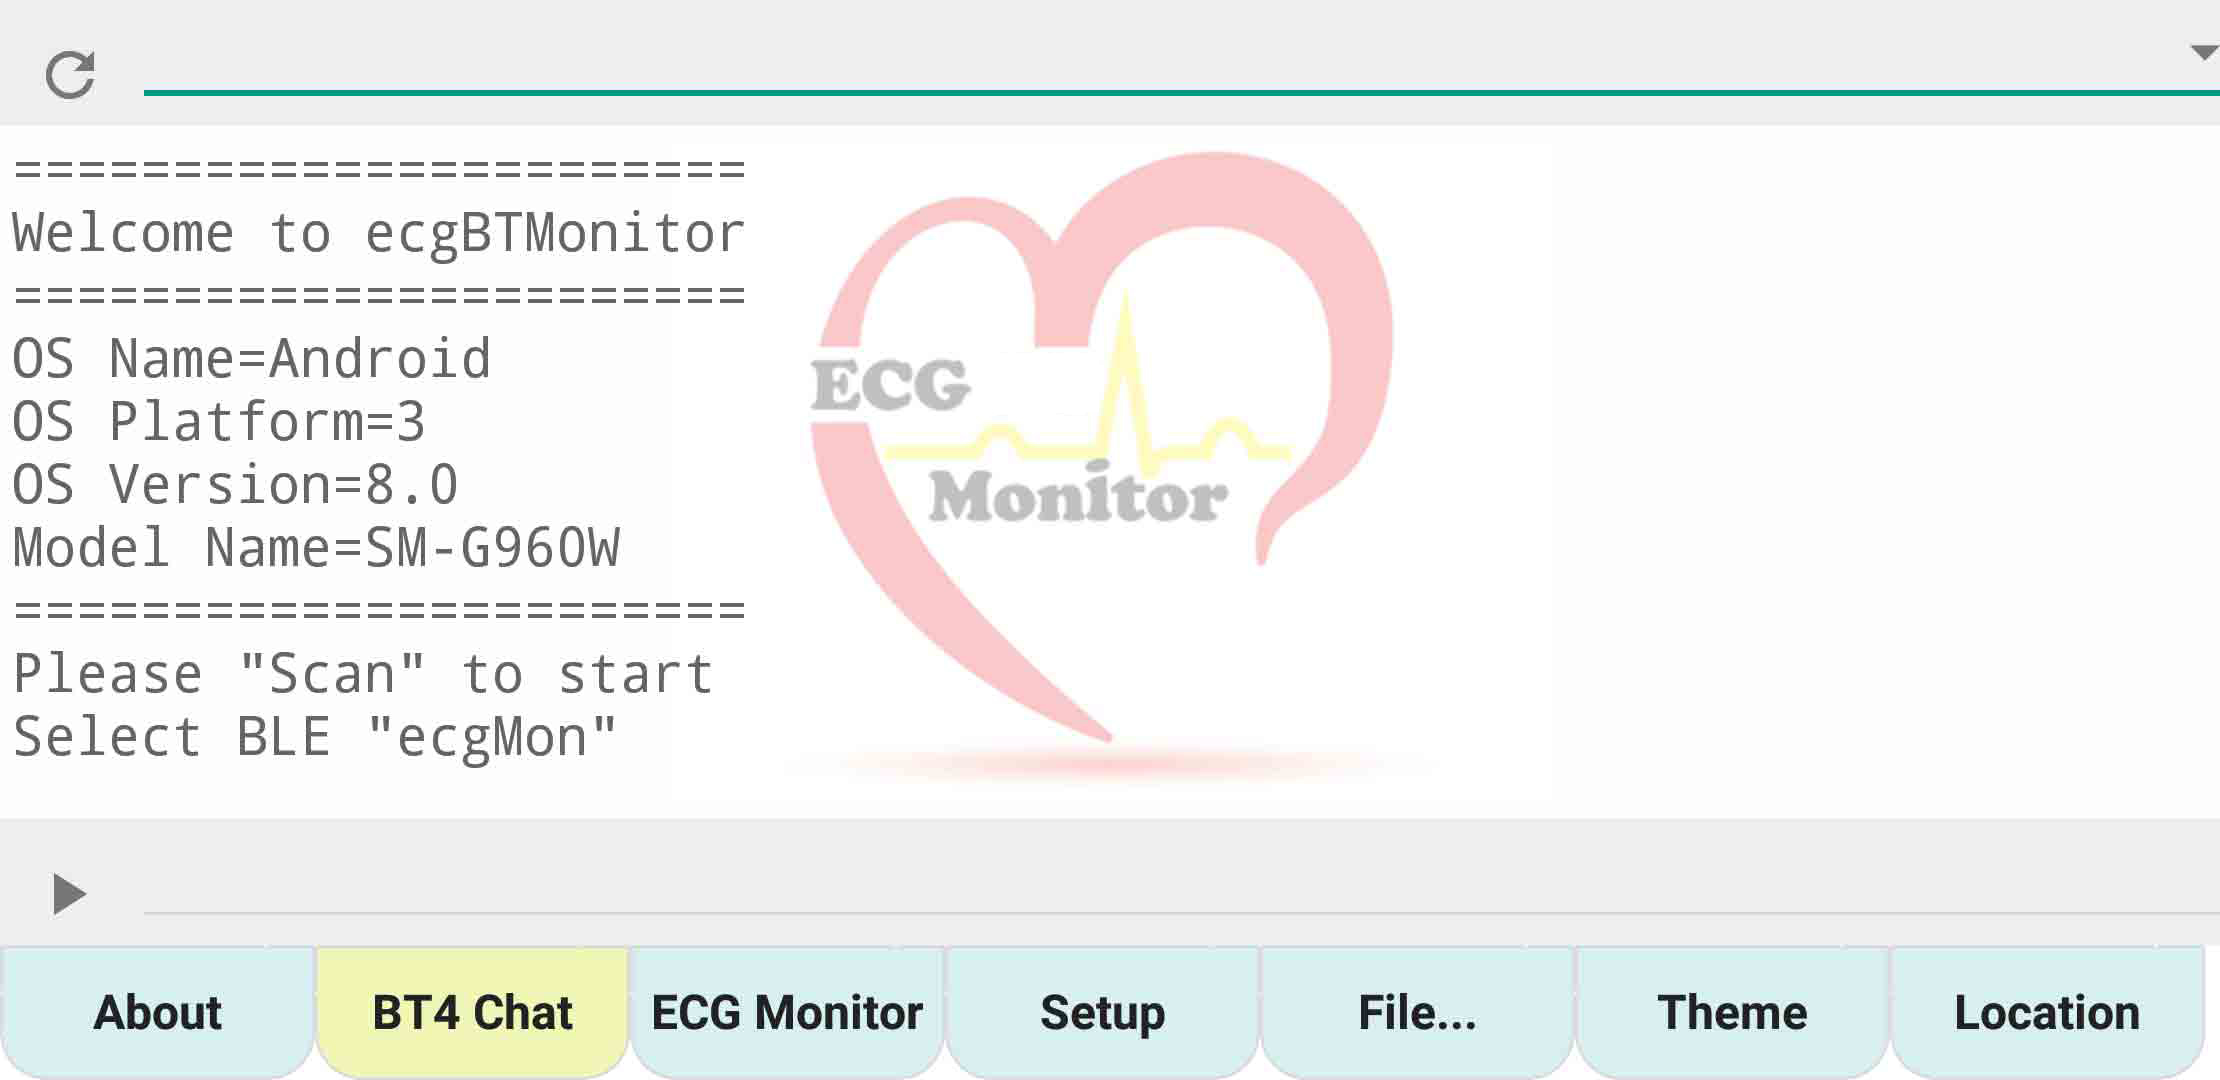 ecgMonitor-BT4-Scan